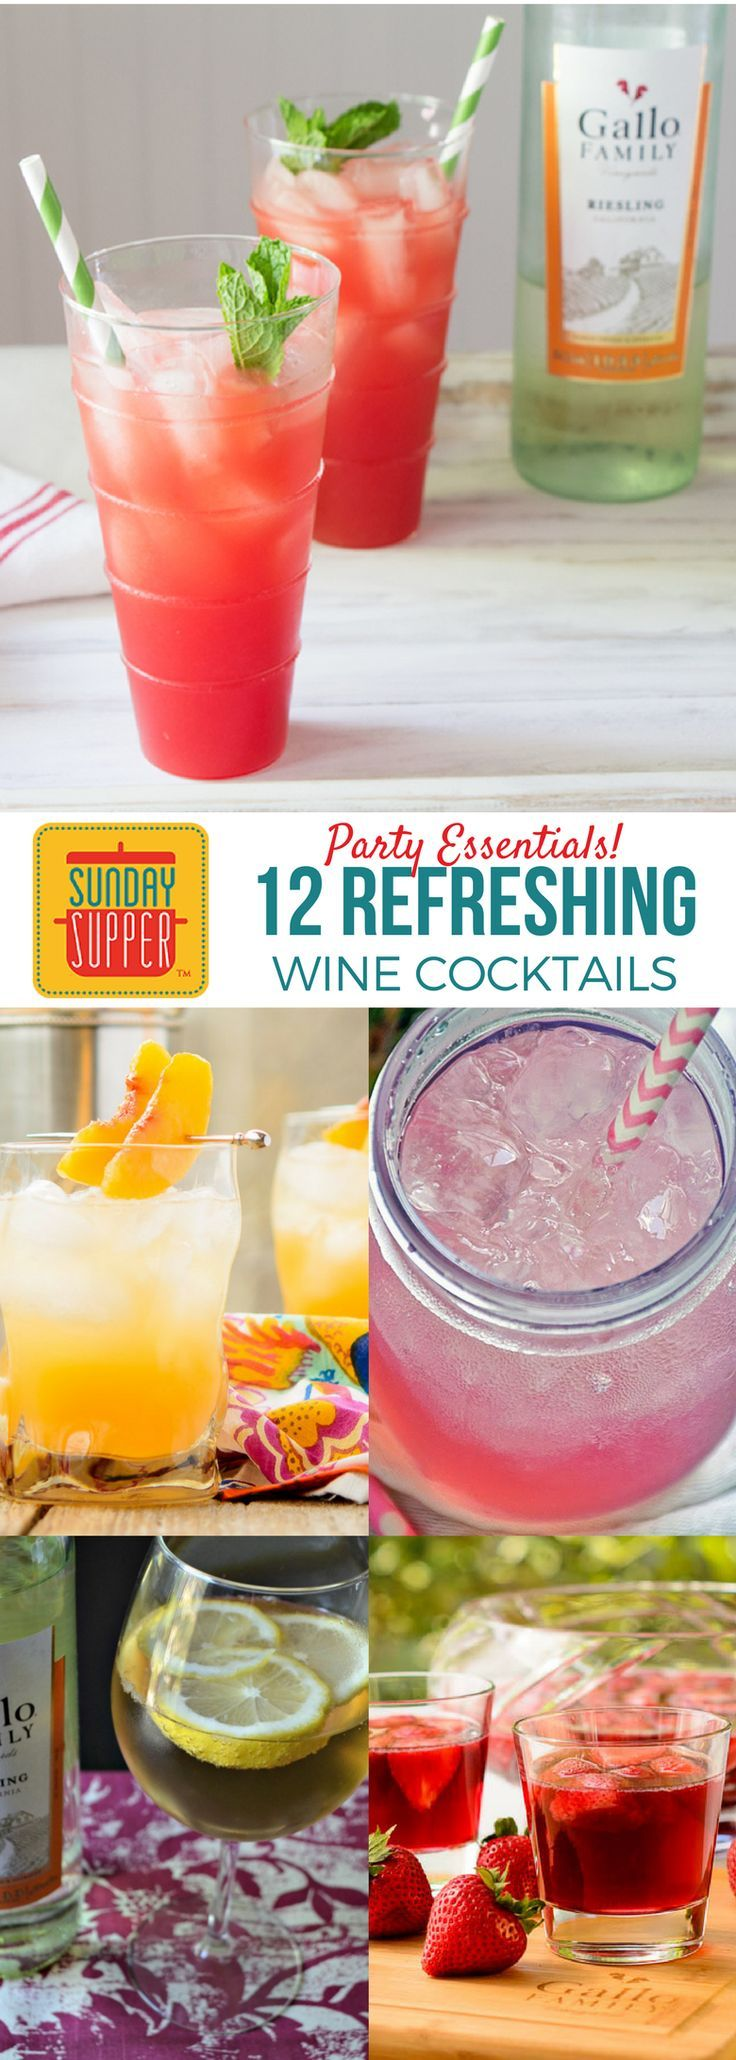 Simple Mixed Drinks Are A Must For Any Good Party These Sunday Supper Recipes Will